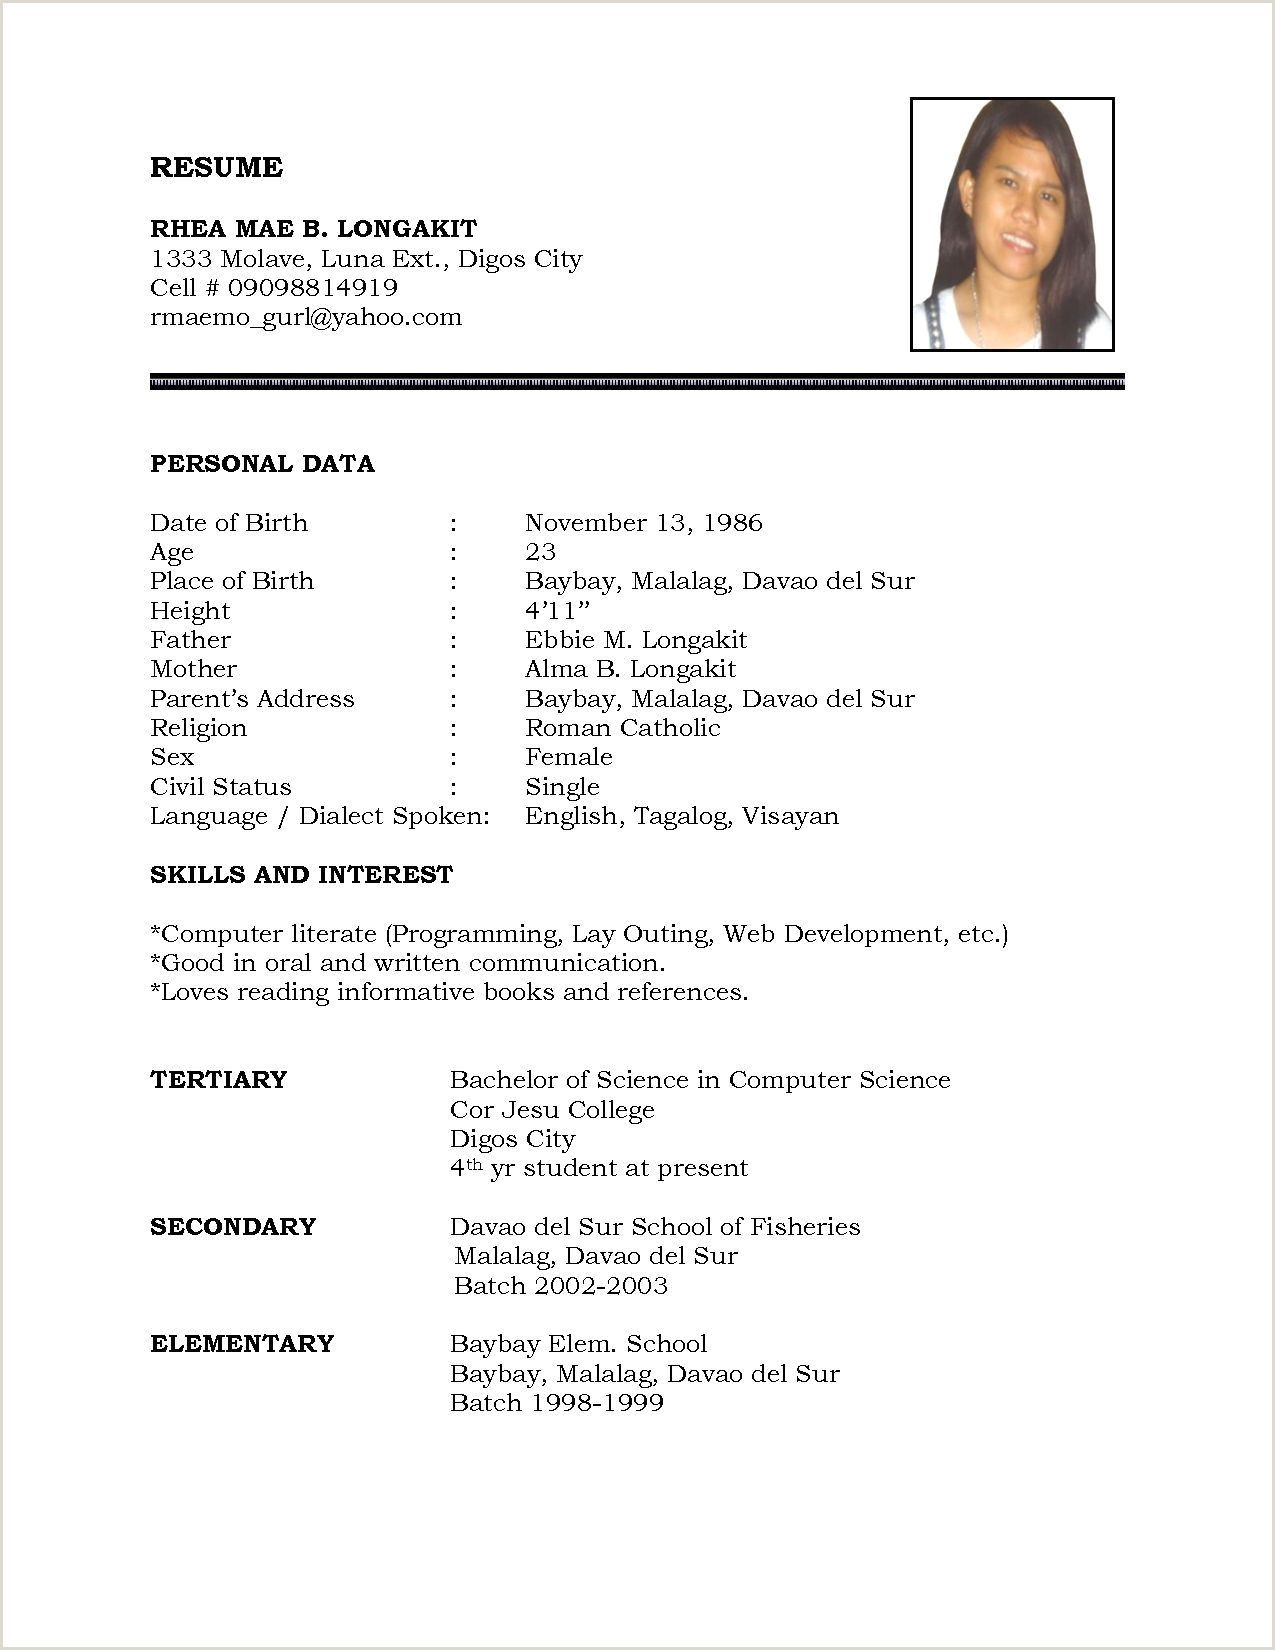 Latest Cv Format For Job In Bangladesh In 2020 Simple Resume Format Job Resume Format Resume Format Examples